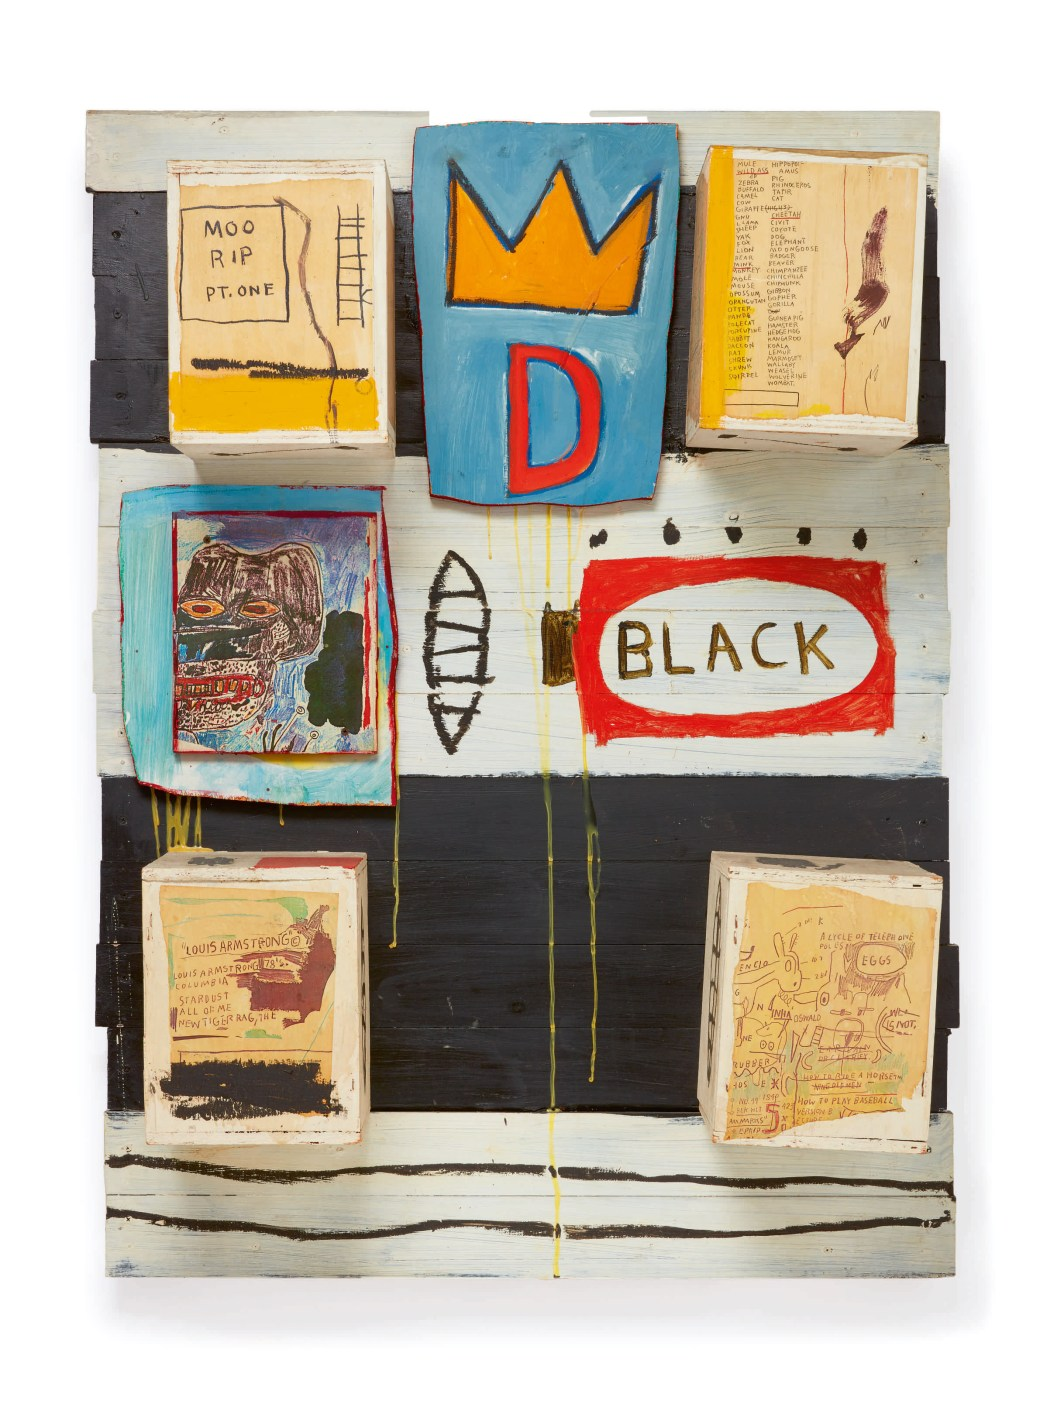 Jean-Michel Basquiat, 'Black', 1986.